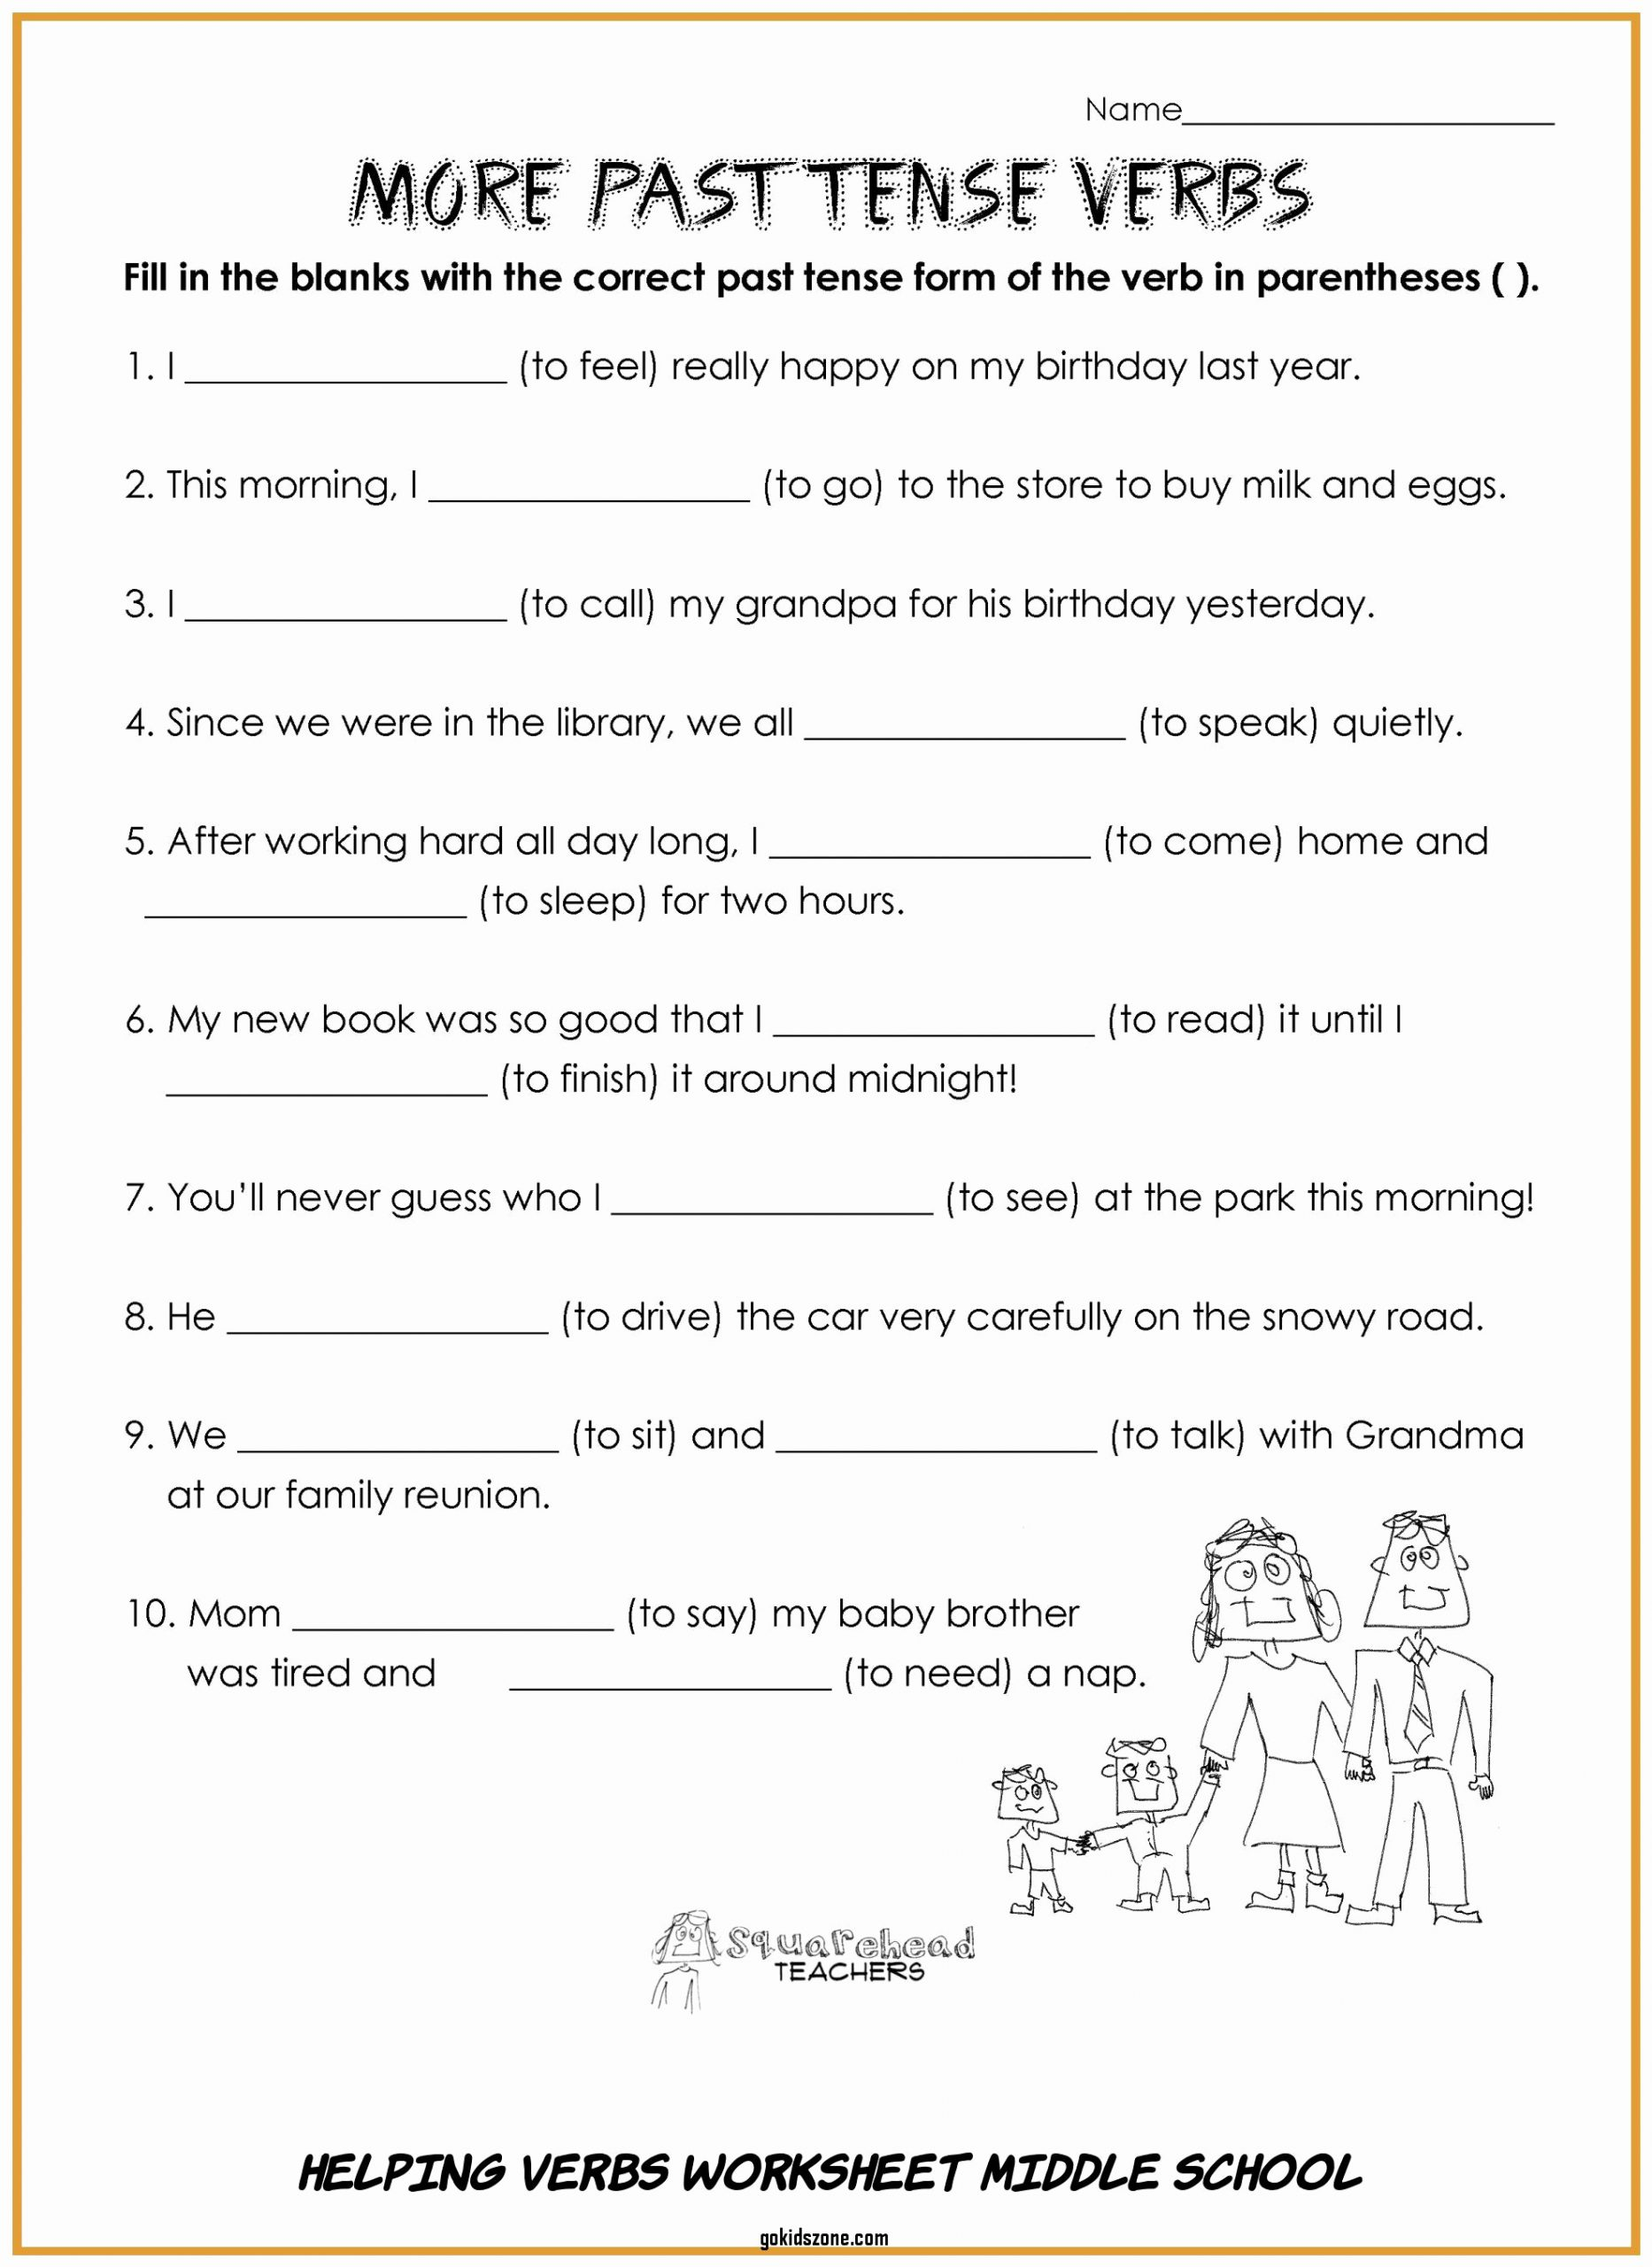 Verbs Worksheets for Middle School Fresh 6 Helping Verbs Worksheet Middle School